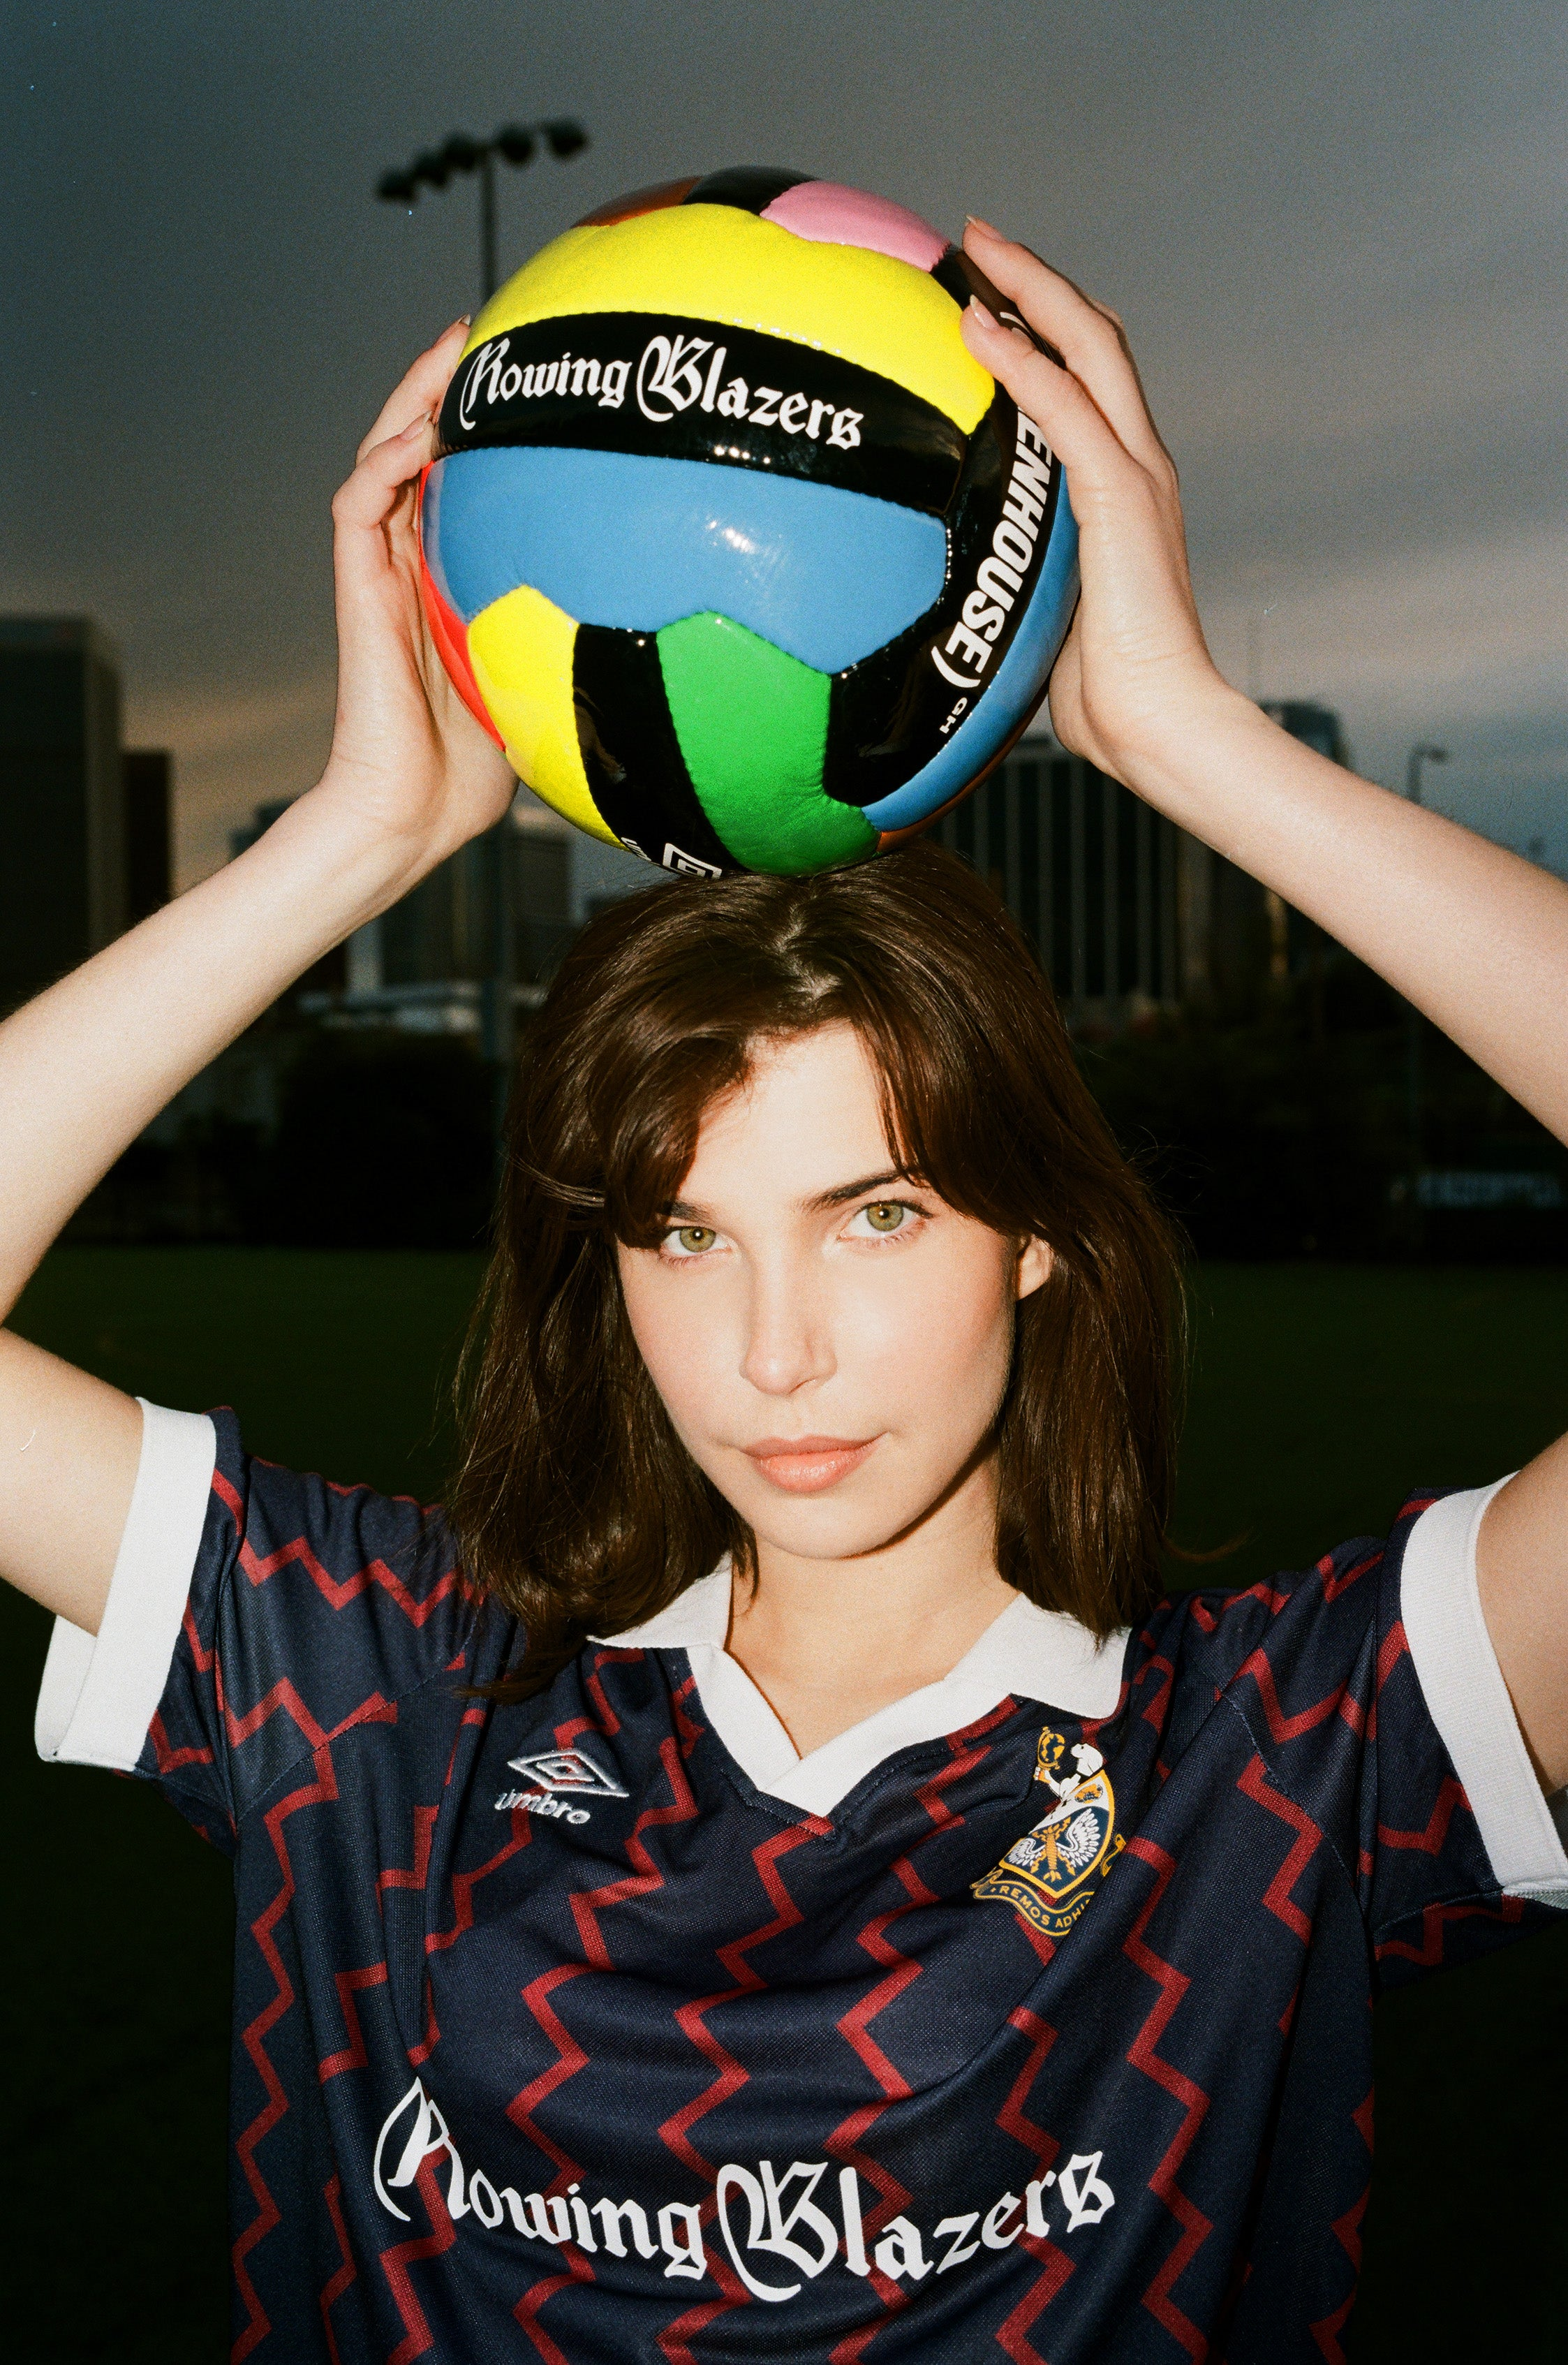 Female model wearing the Rowing Blazers X Umbro Red and Navy Zig-Zag Soccer Jersey holding the Rowing Blazers X Umbro Soccer Ball above her head